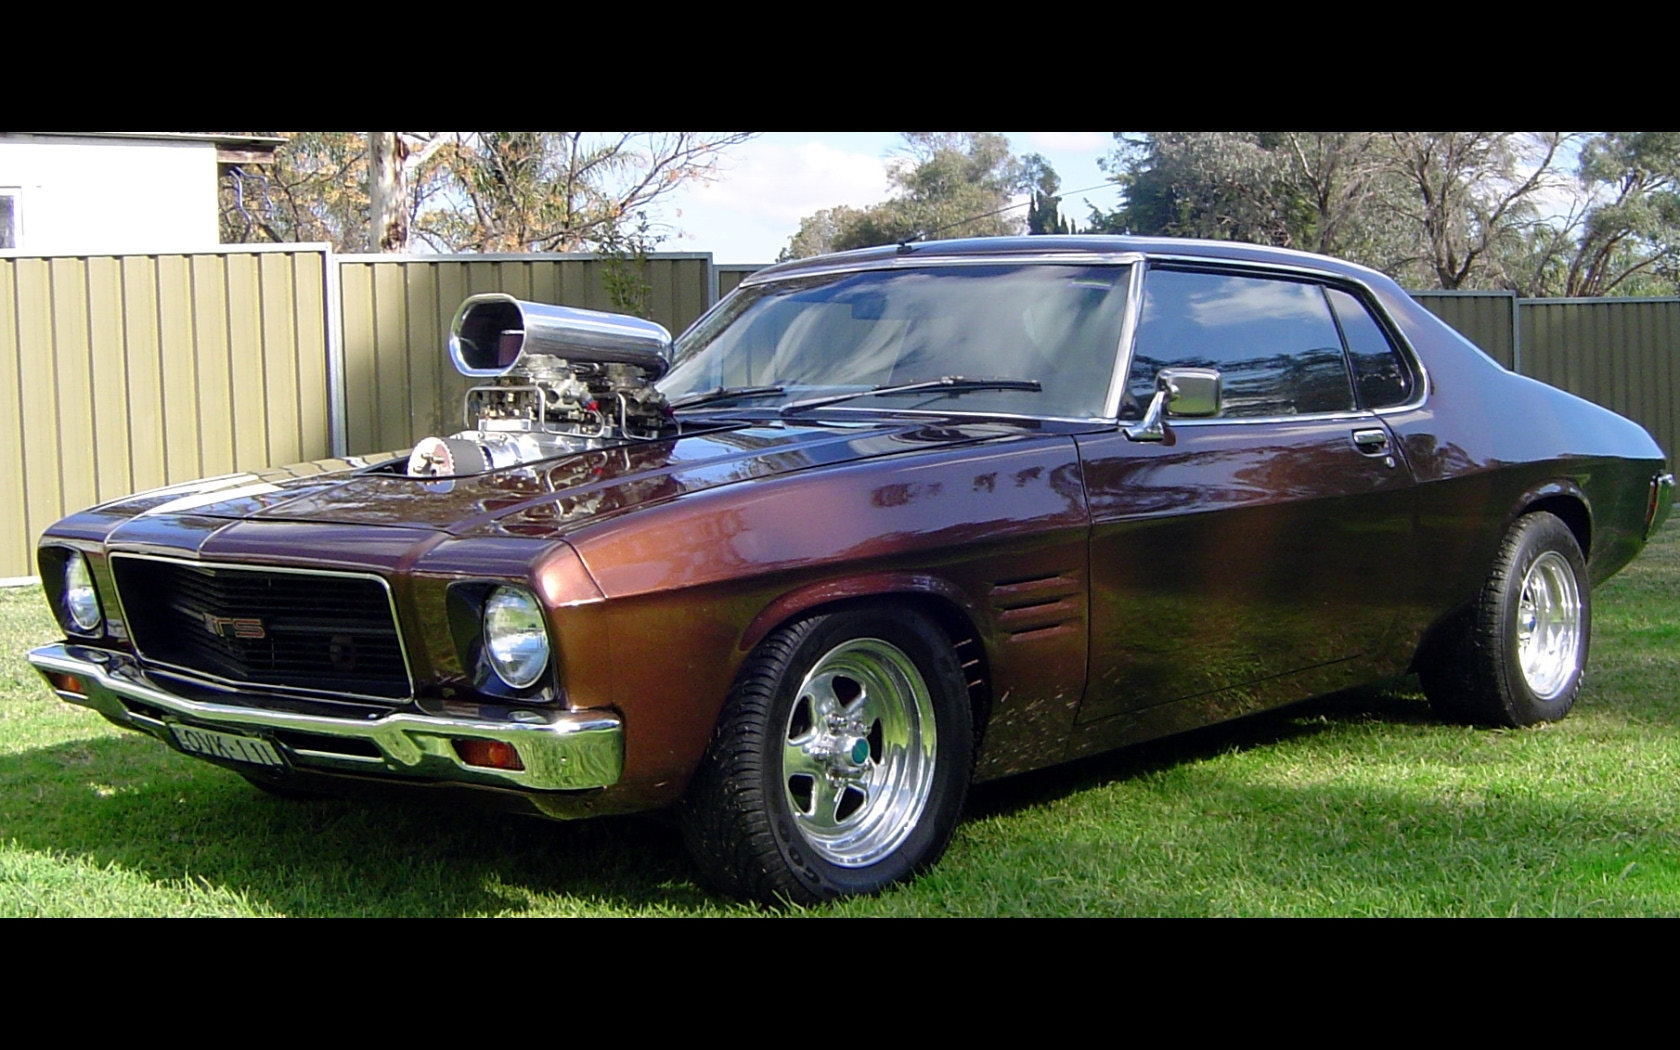 Holden Hq Gts Monaro Supercharged Engine Muscle Cars Hot Rod